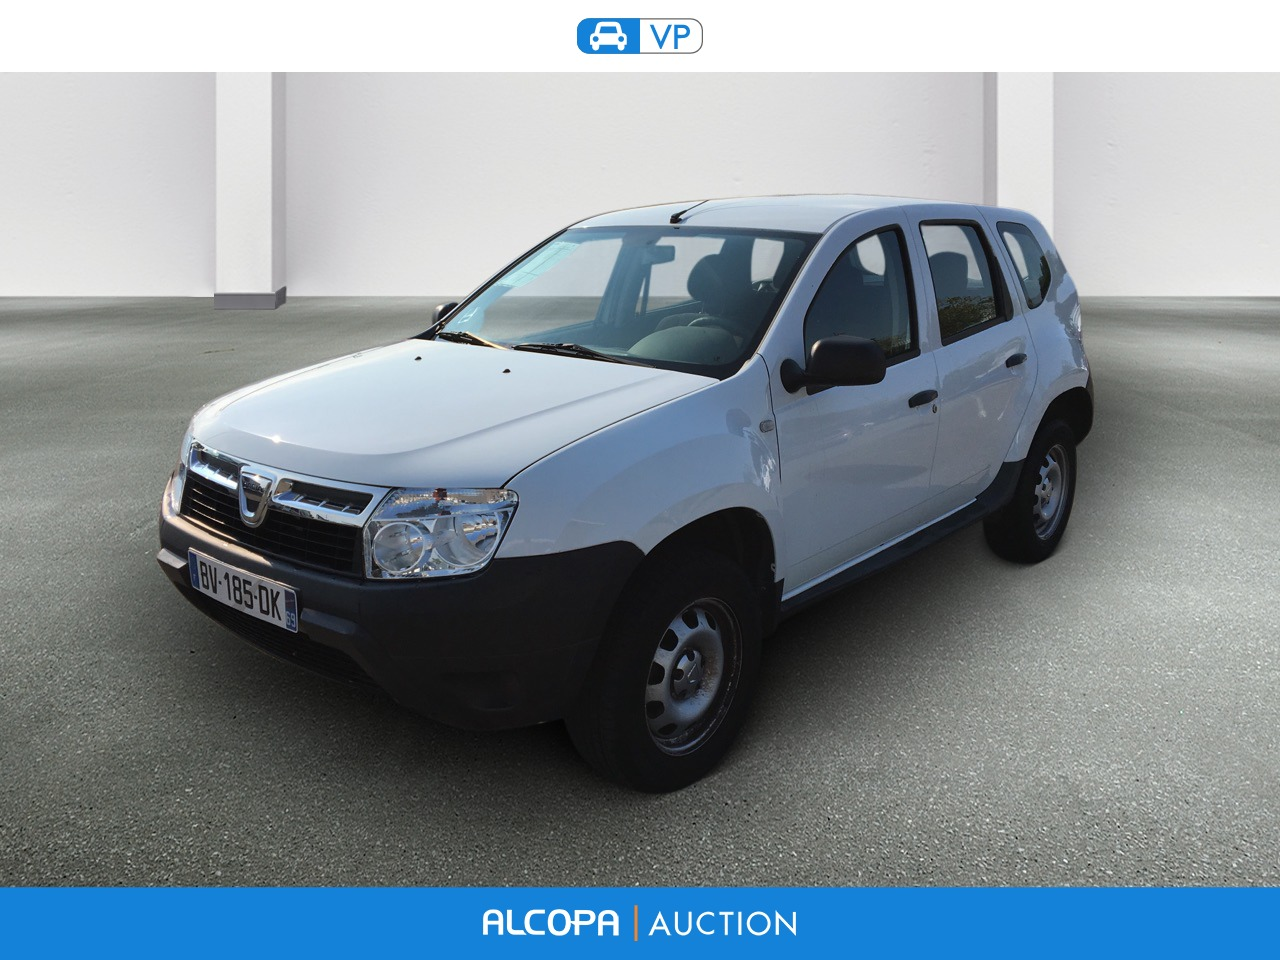 dacia duster duster 1 6 16v 105 bio thanol eco2 4x2 alcopa auction. Black Bedroom Furniture Sets. Home Design Ideas